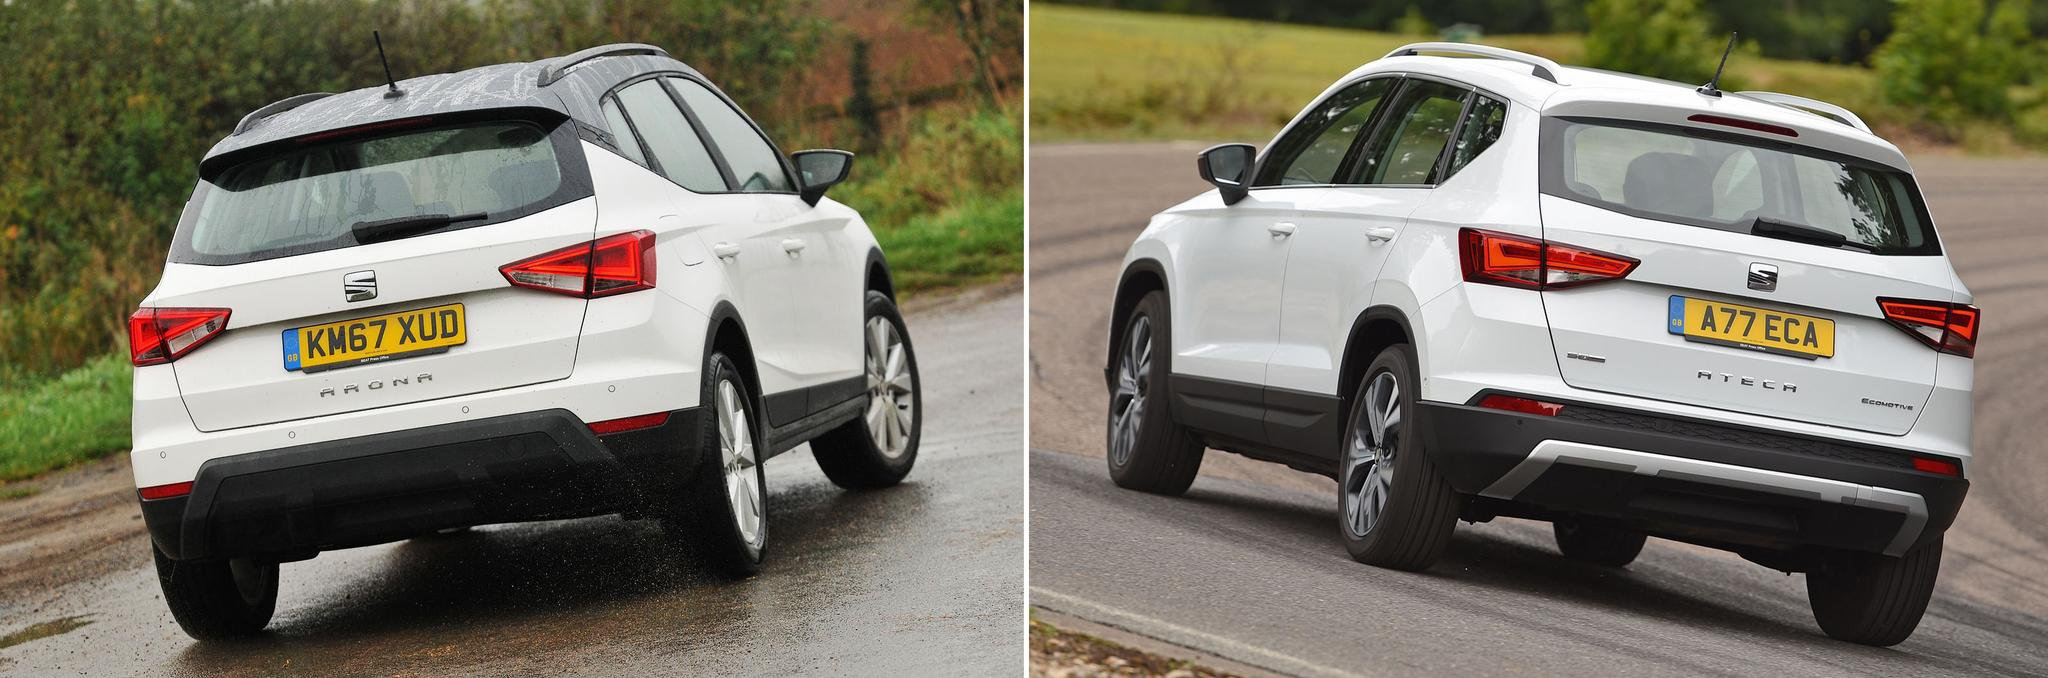 New Seat Arona vs used Seat Ateca: which is best?